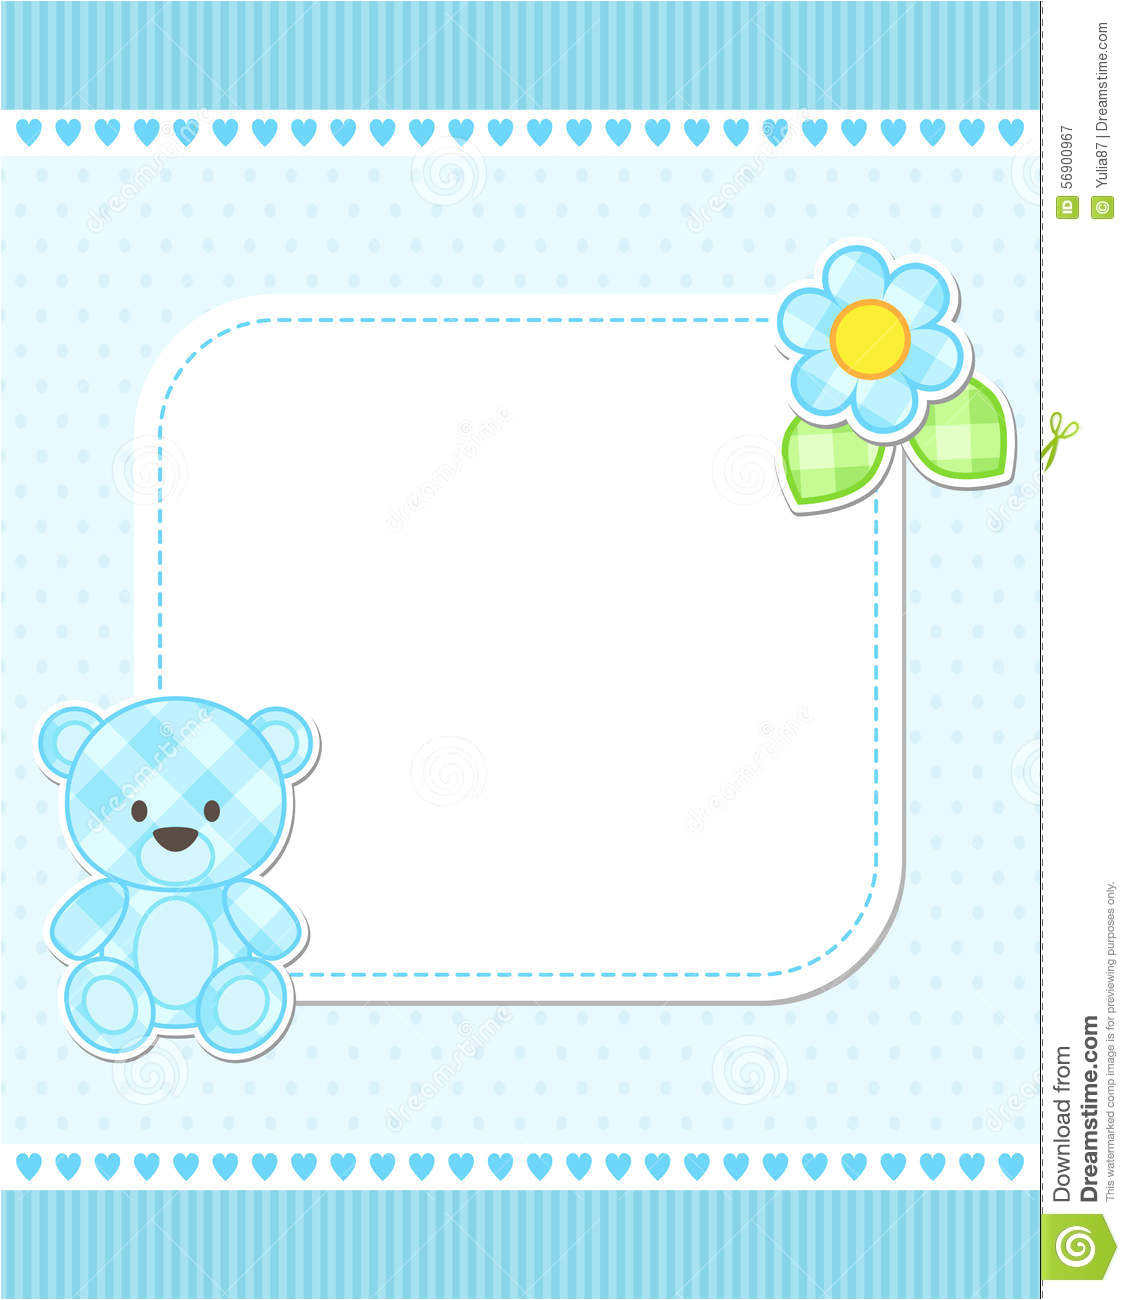 stock illustration blue teddy bear card illustration boy vector template place your text baby shower birth announcement image56900967